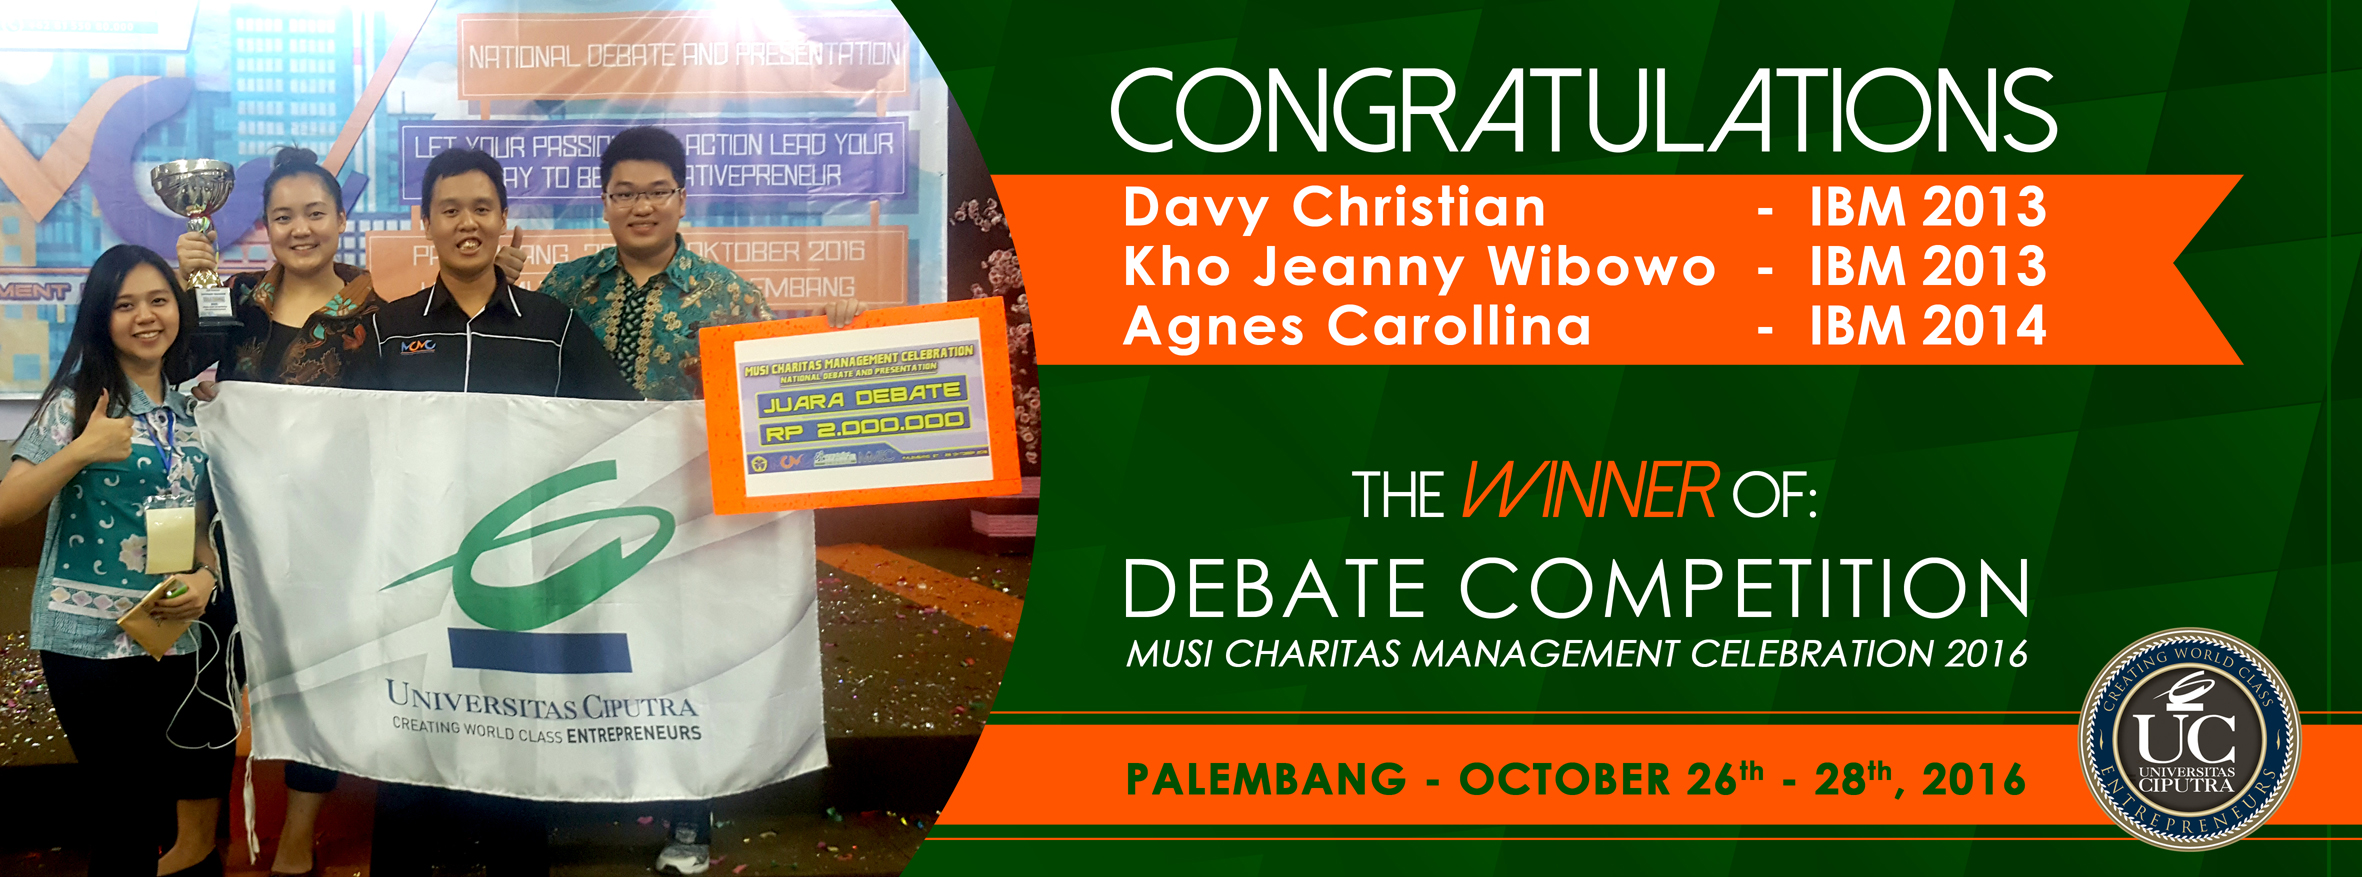 CONGRATULATION : The Winner of Debate Competition